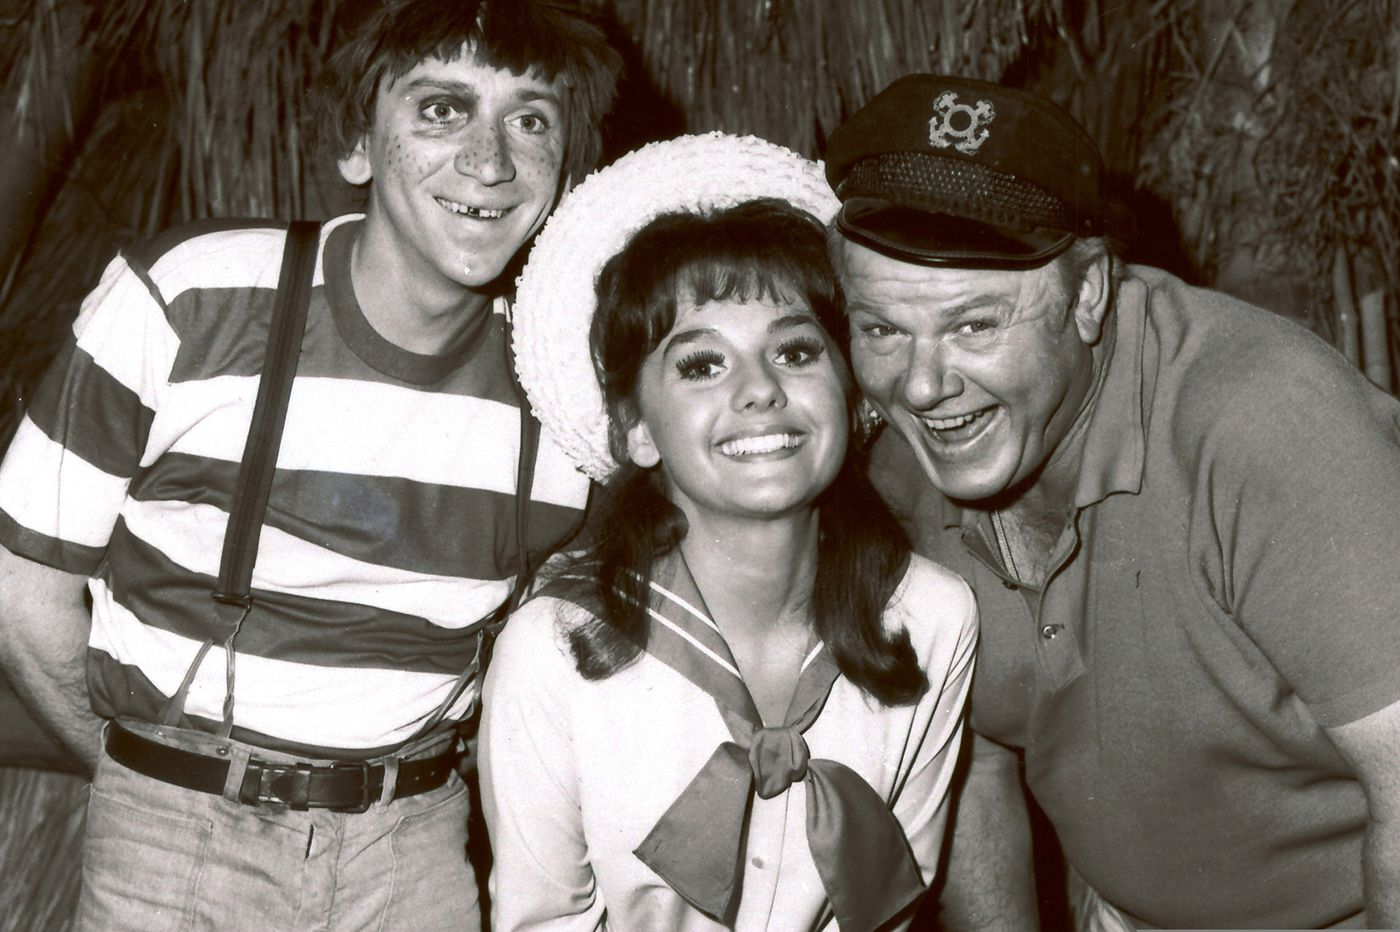 'Gilligan's Island' star Dawn Wells dies; COVID-19 cited